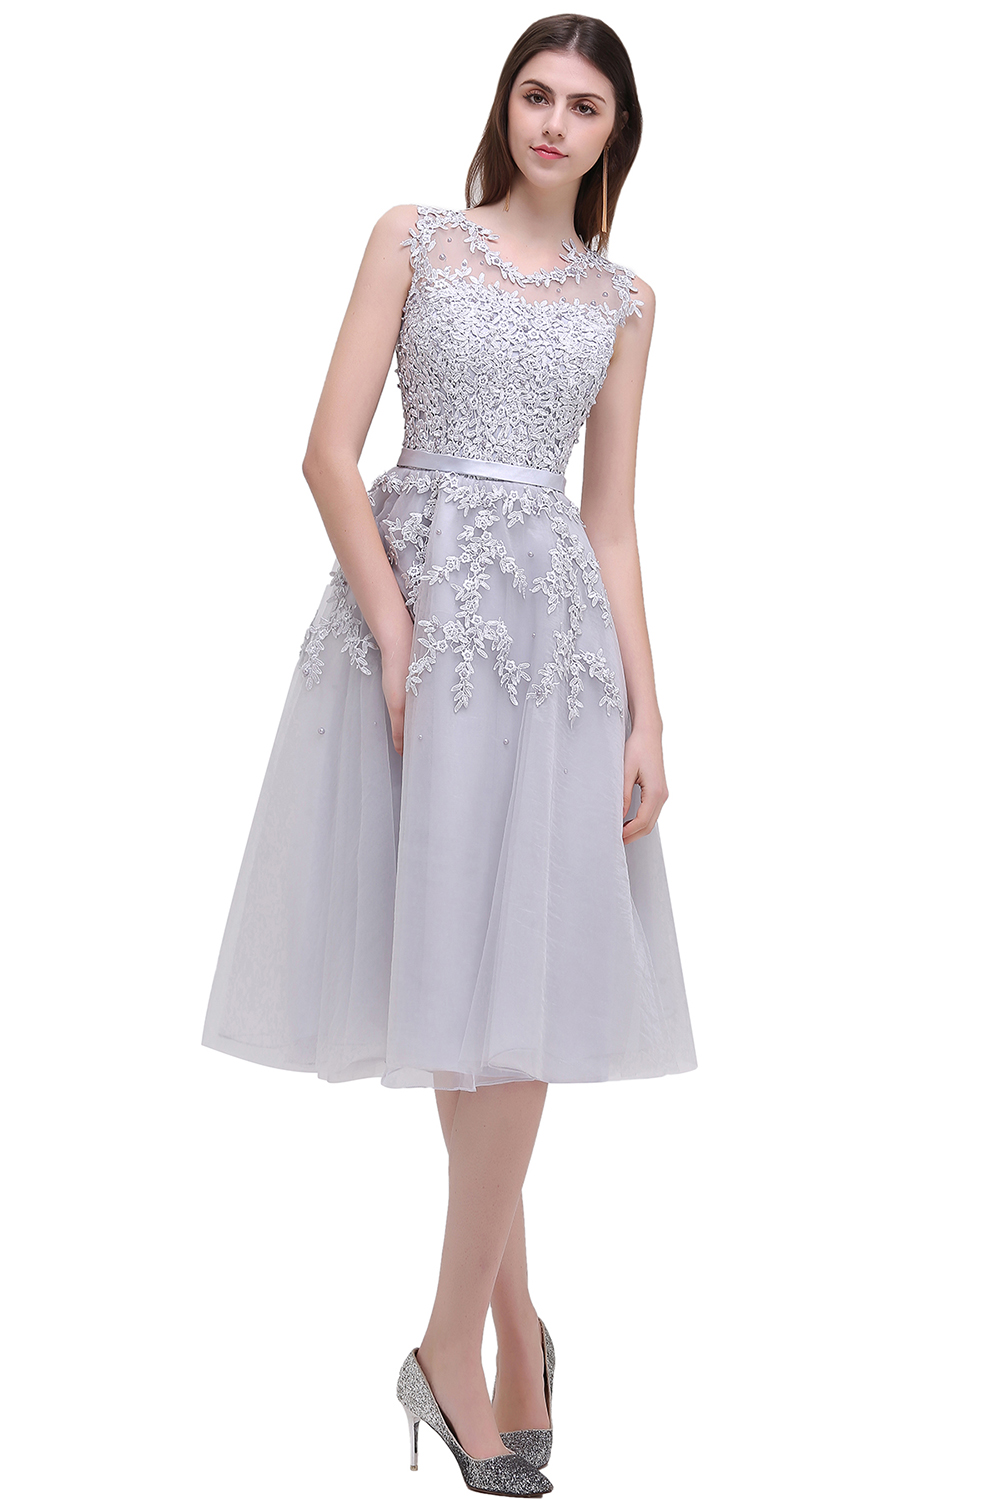 Image 3 - In stock fast ship Short beaded Cocktail Dresses Dusty pink Lace Cheap A line Tulle Sleeveless Cocktail Party Prom Dress 2019-in Cocktail Dresses from Weddings & Events